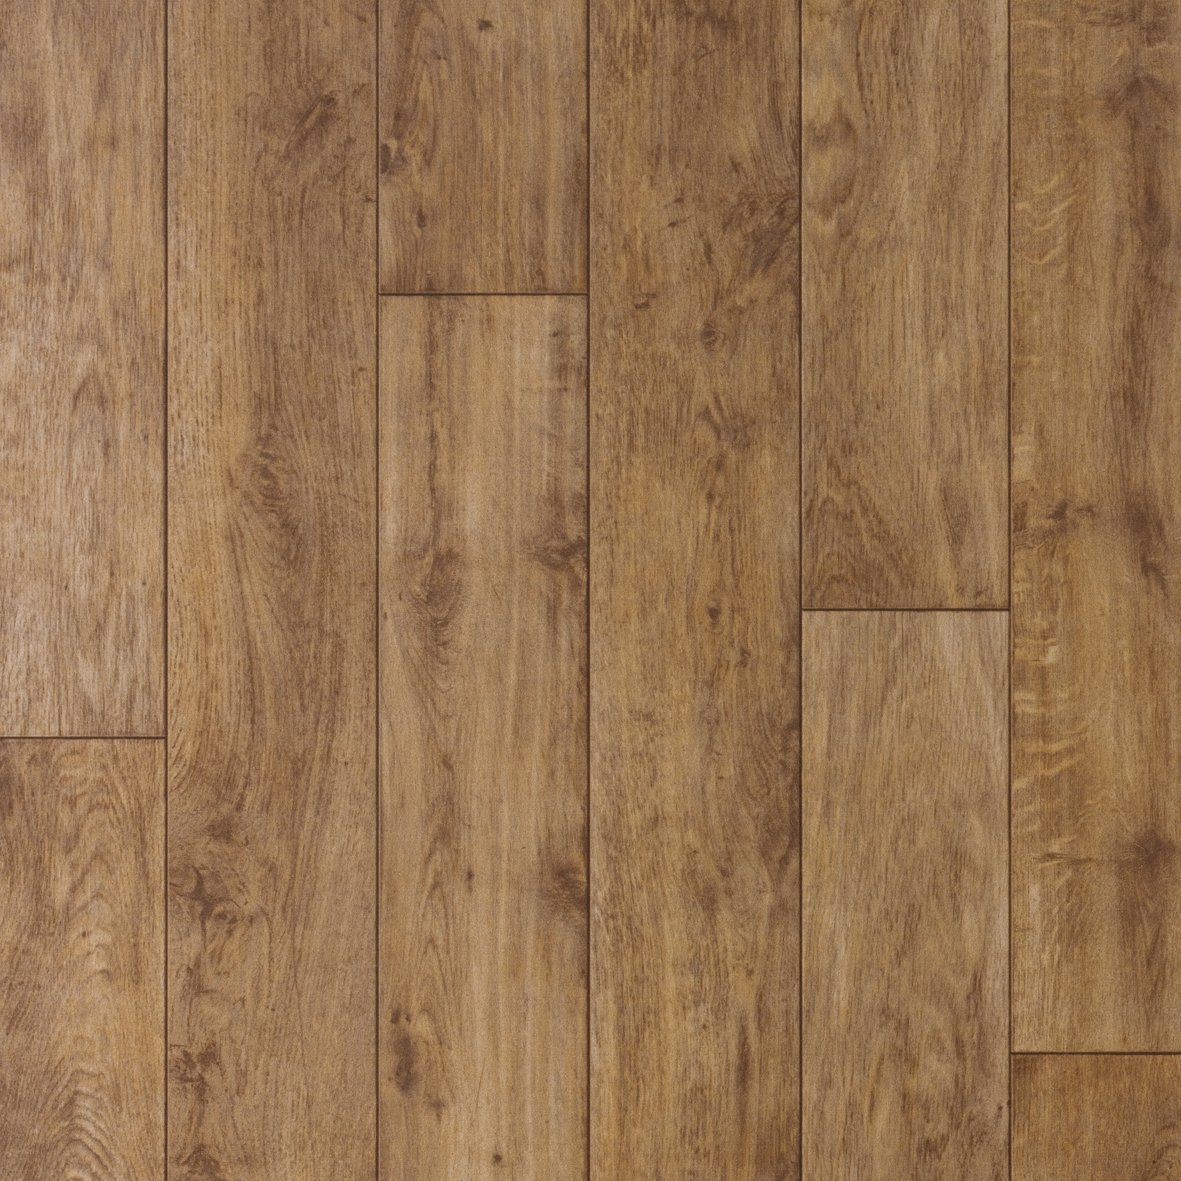 Flotex Wood HD Flooring Available In 11 Designs From 25